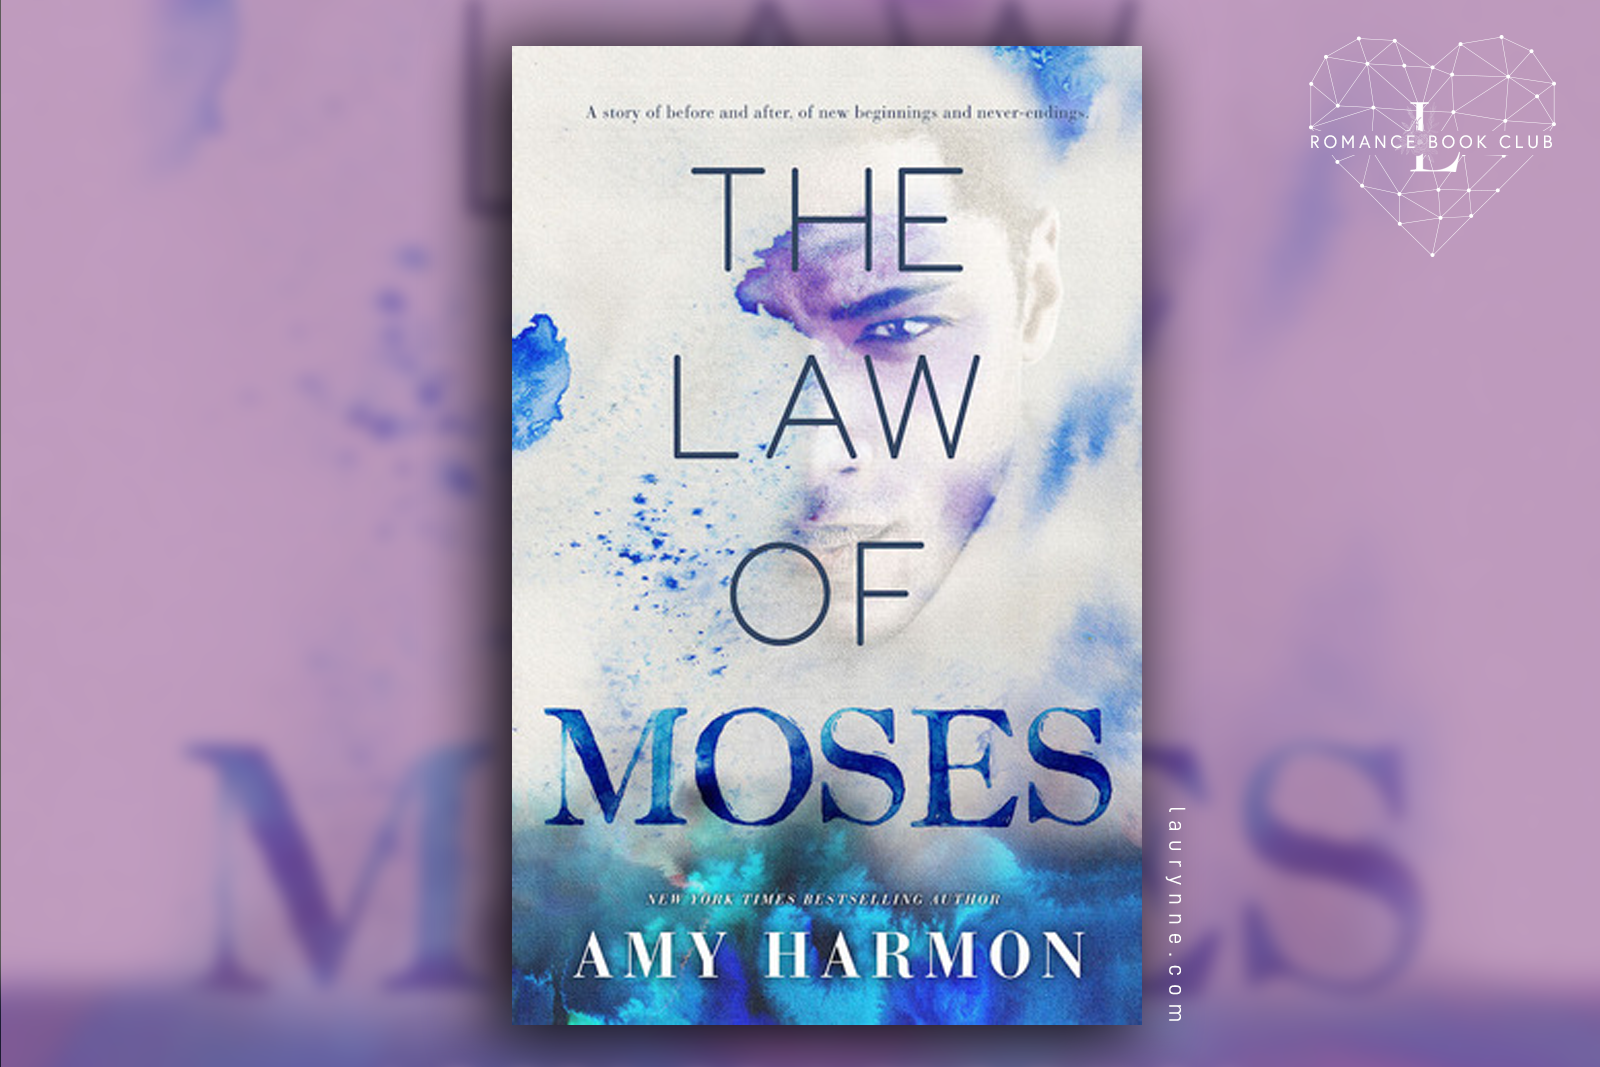 Book Review: The Law of Moses (The Law of Moses #1) by Amy Harmon